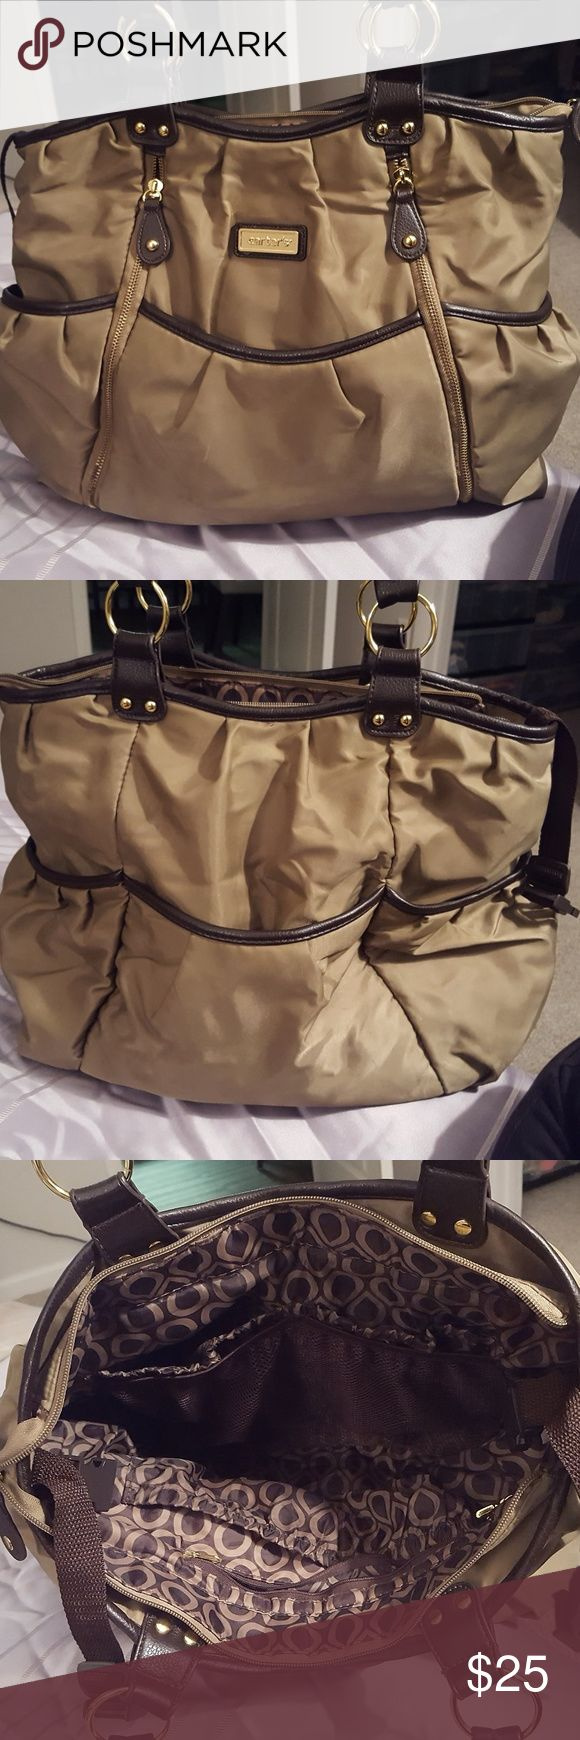 Carter's bag, perfect for travel! It's intended use is a diaper bag, but I've used it for travel because it's so stylish and perfect with all the pockets especially on long flights or over nights. Multifunctional! Carter's Bags